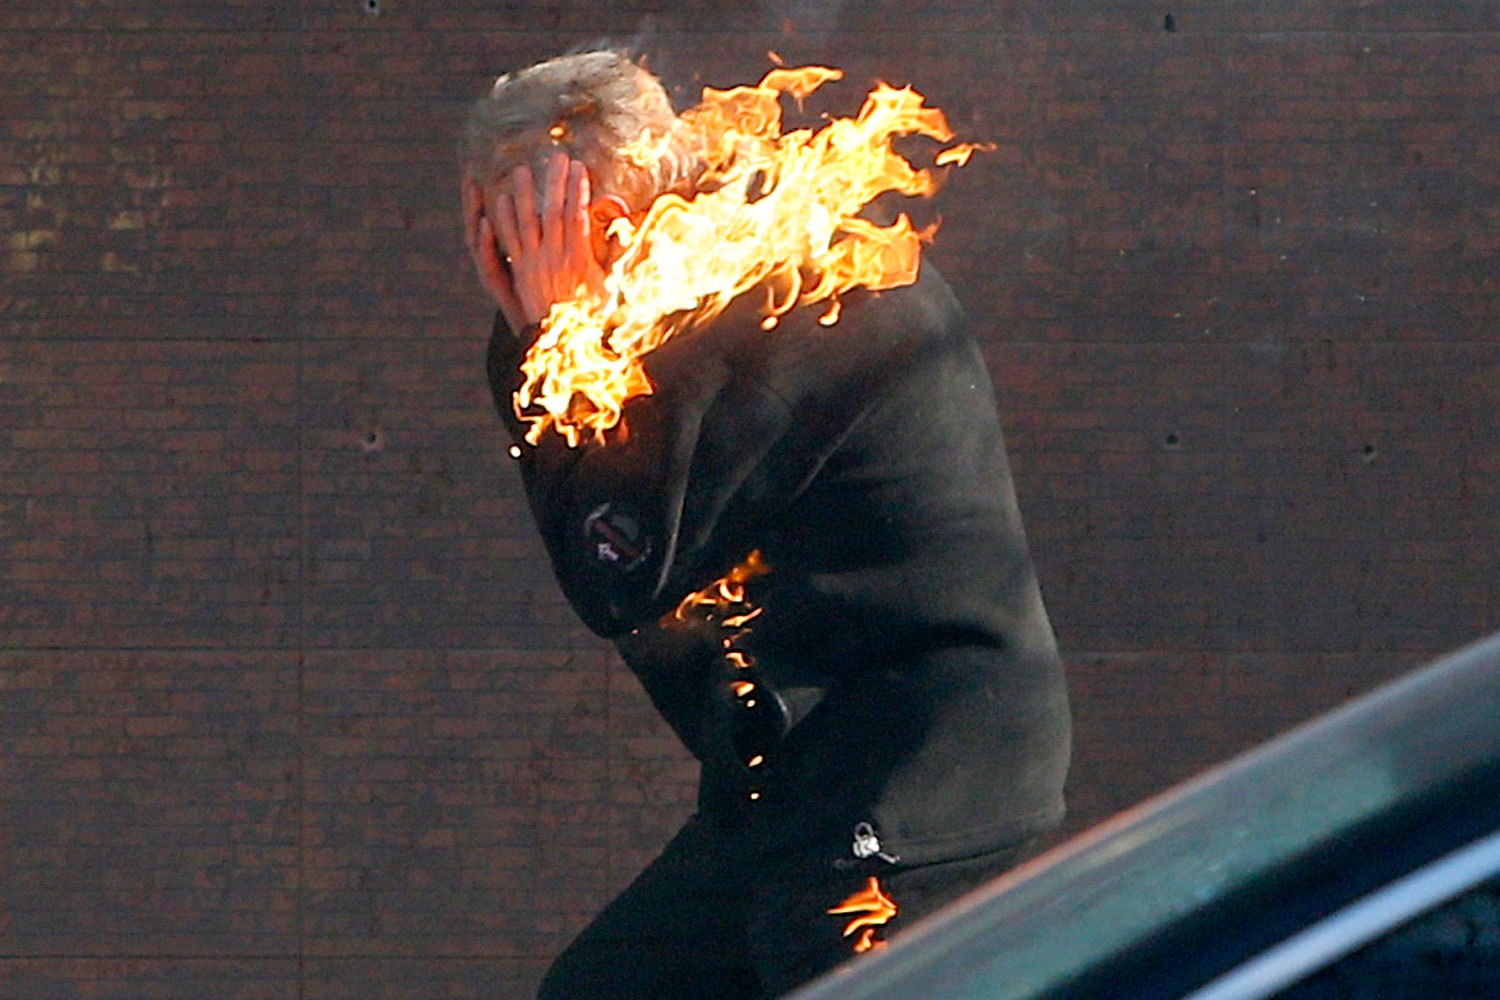 An anti-government protester is engulfed in flames while running from the scene during clashes with riot police outside Ukraine's parliament in Kiev, on Feb. 18, 2014.